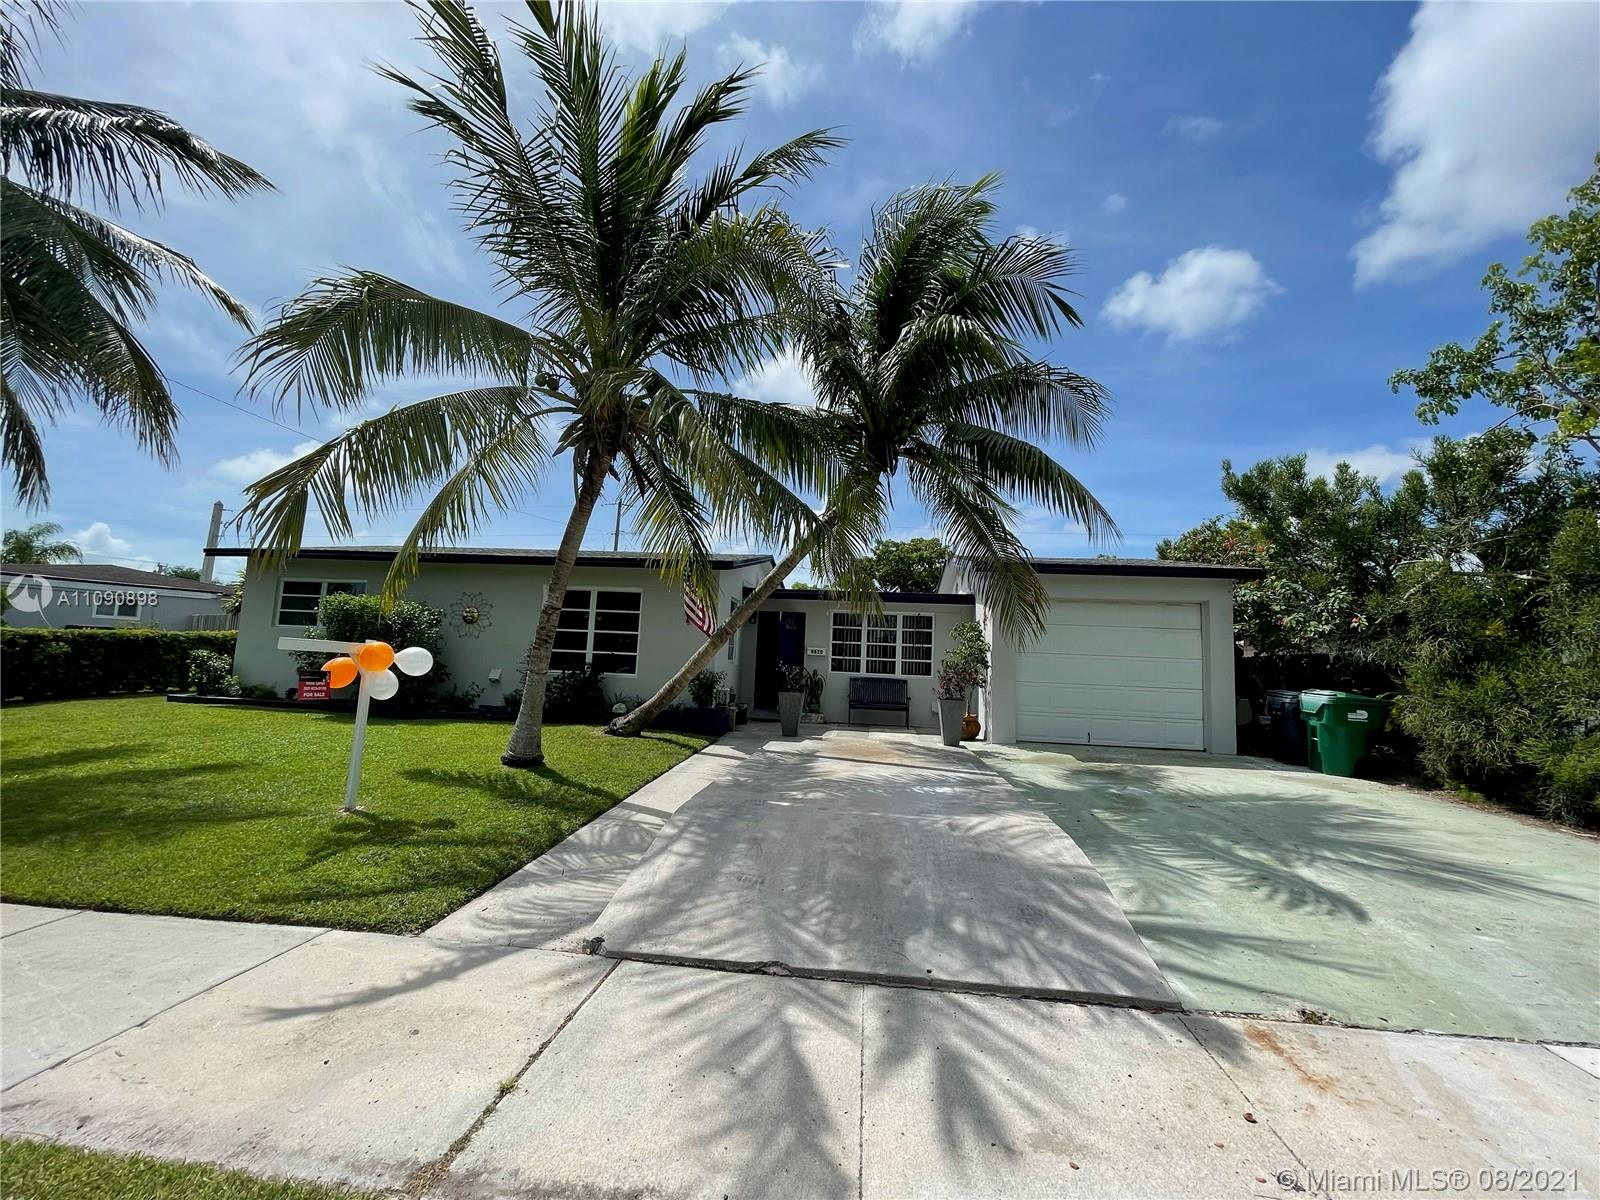 IF YOU LOOKING FOR A QUIET NEIGHBORHOOD , updated OPEN KITCHEN LAYOUT, LARGE FAMILY ROOM, MASTER ROOM with large walk-in closet, LARGE FENCE IN BACKYARD, 3/2 and a big den that can be an extra room.  New roof, New plumbing, renovated master bathroom, NO HoA, NO flood zone, 5min to black point marina,  YOU JUST FOUND IT. SCHEDULE to see it......Easy to show, same day appointment, contact List agent SOLD AS IS